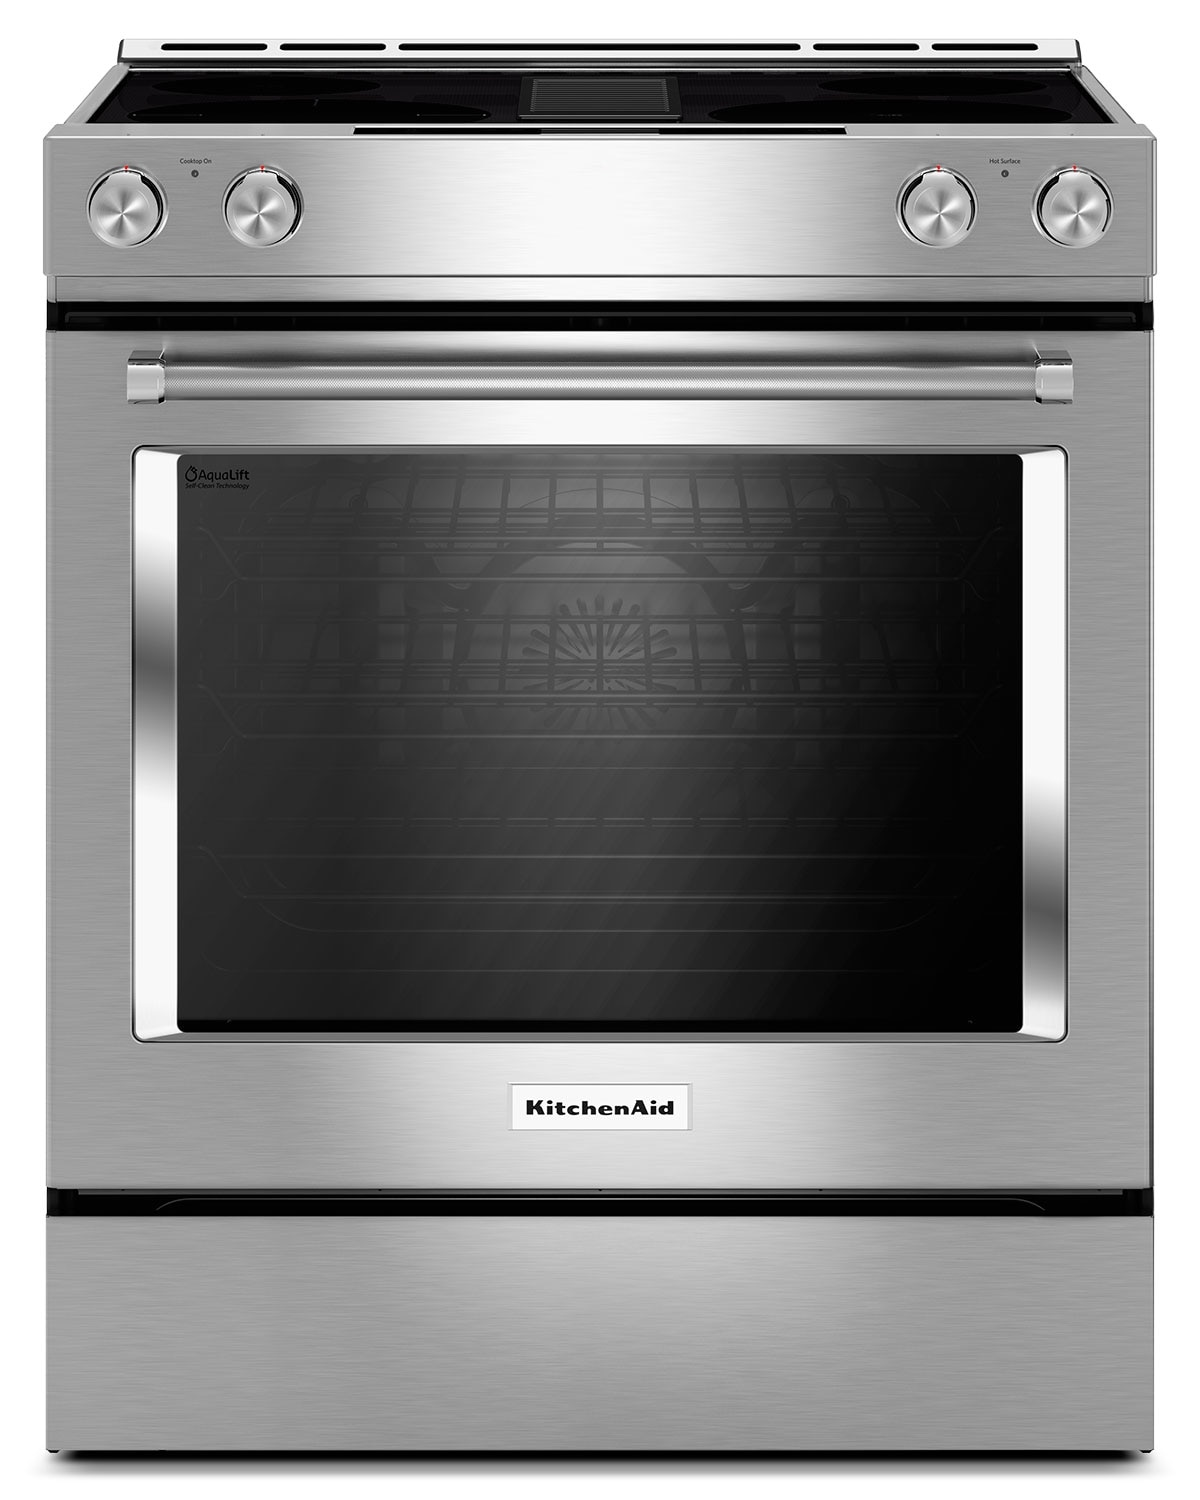 Cooking Products - KitchenAid Stainless Steel Slide-In Electric Convection Range (6.4 Cu. Ft.) - KSEG950ESS